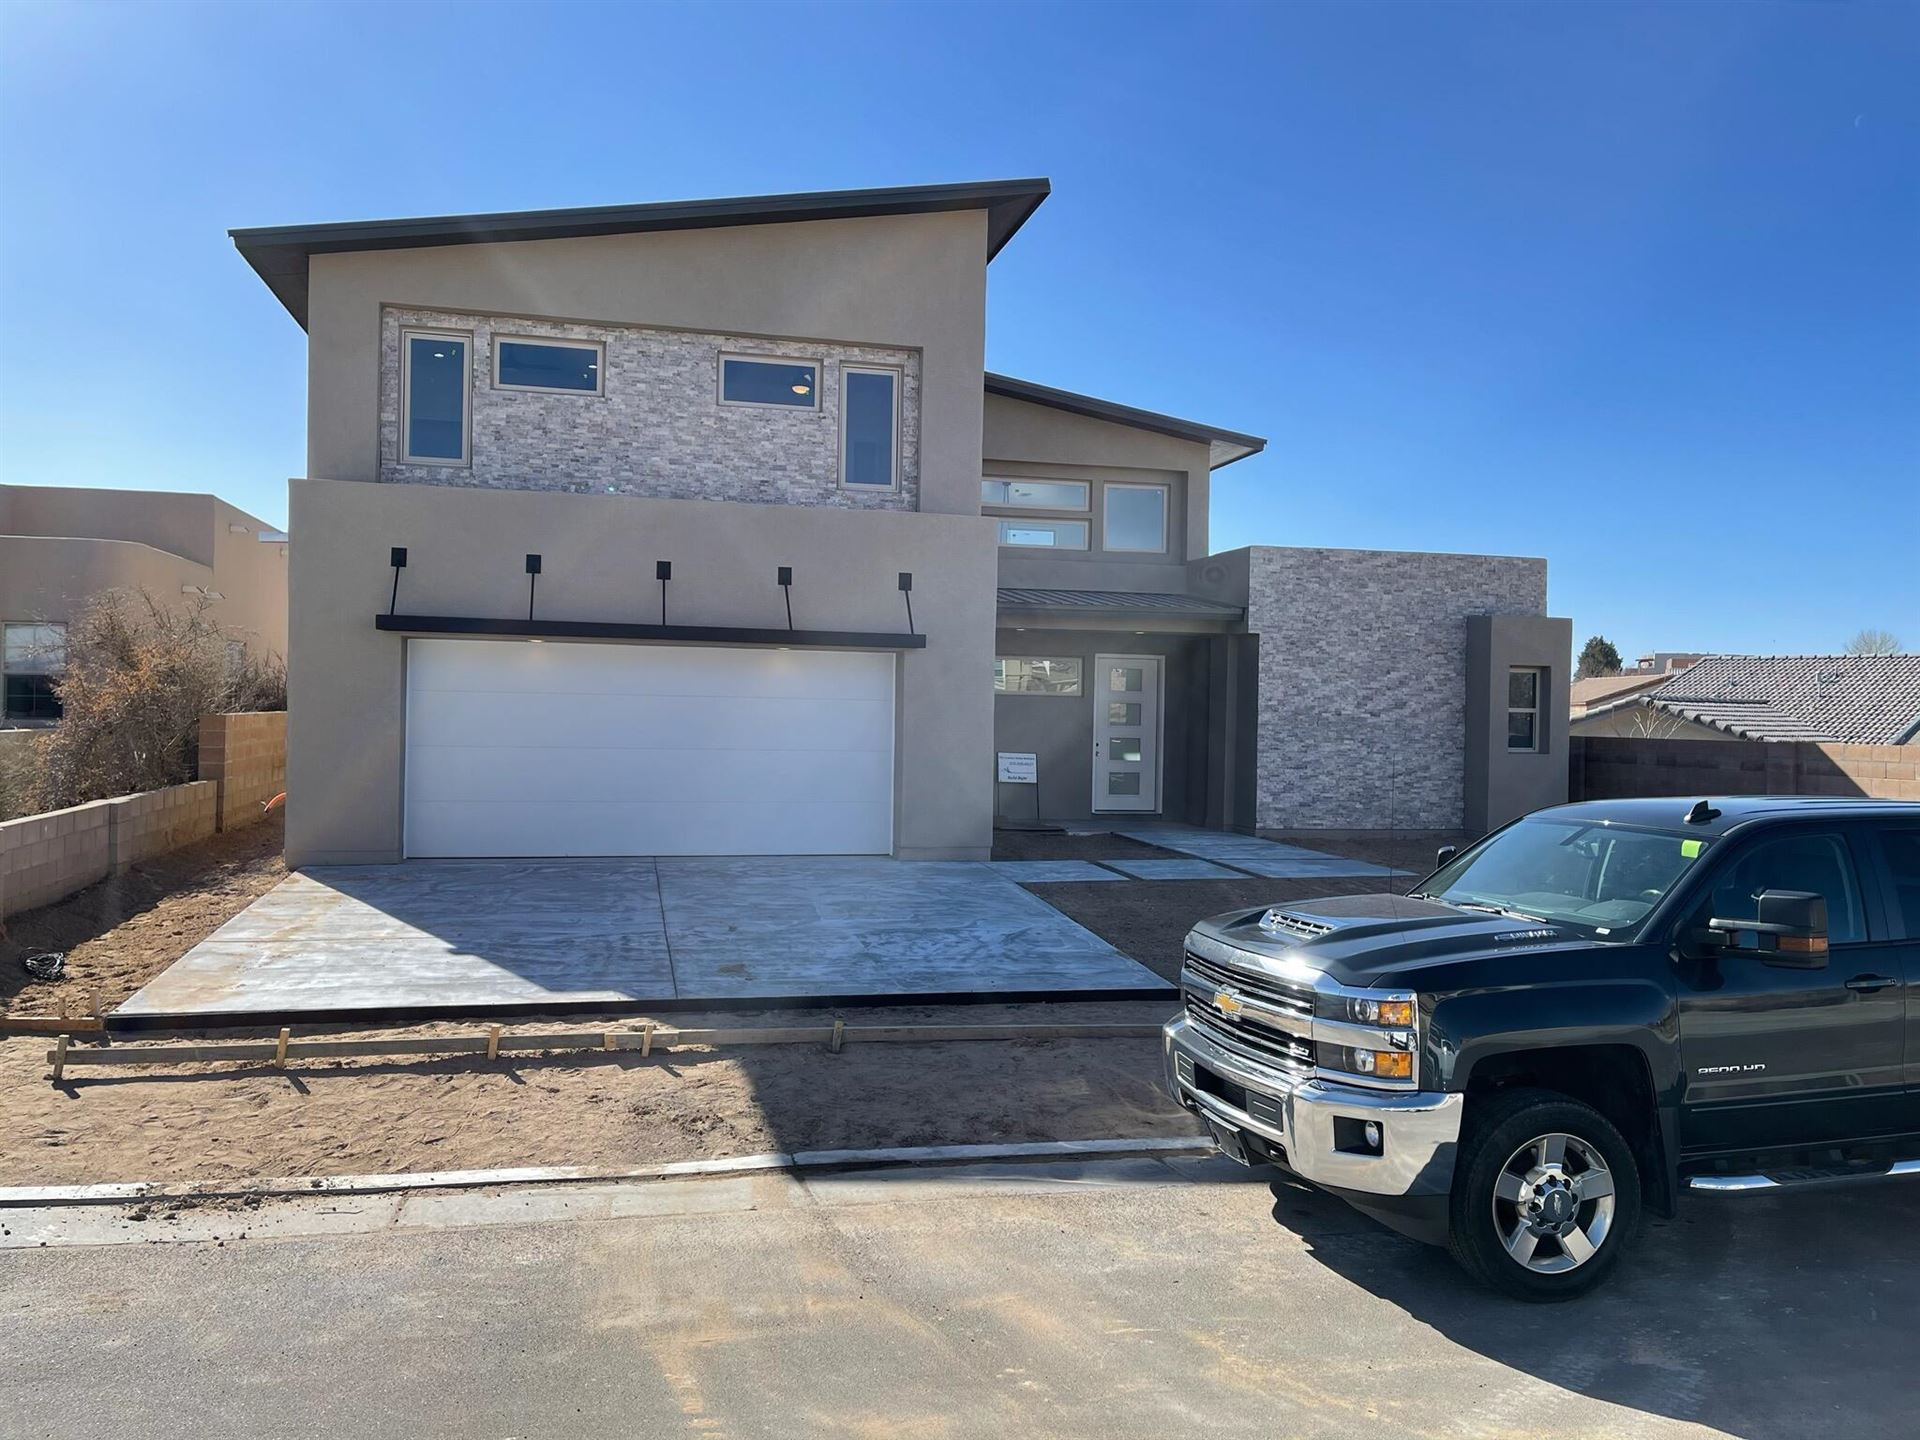 4548 ARROWHEAD Avenue NW, Albuquerque, NM 87114 - MLS#: 976066